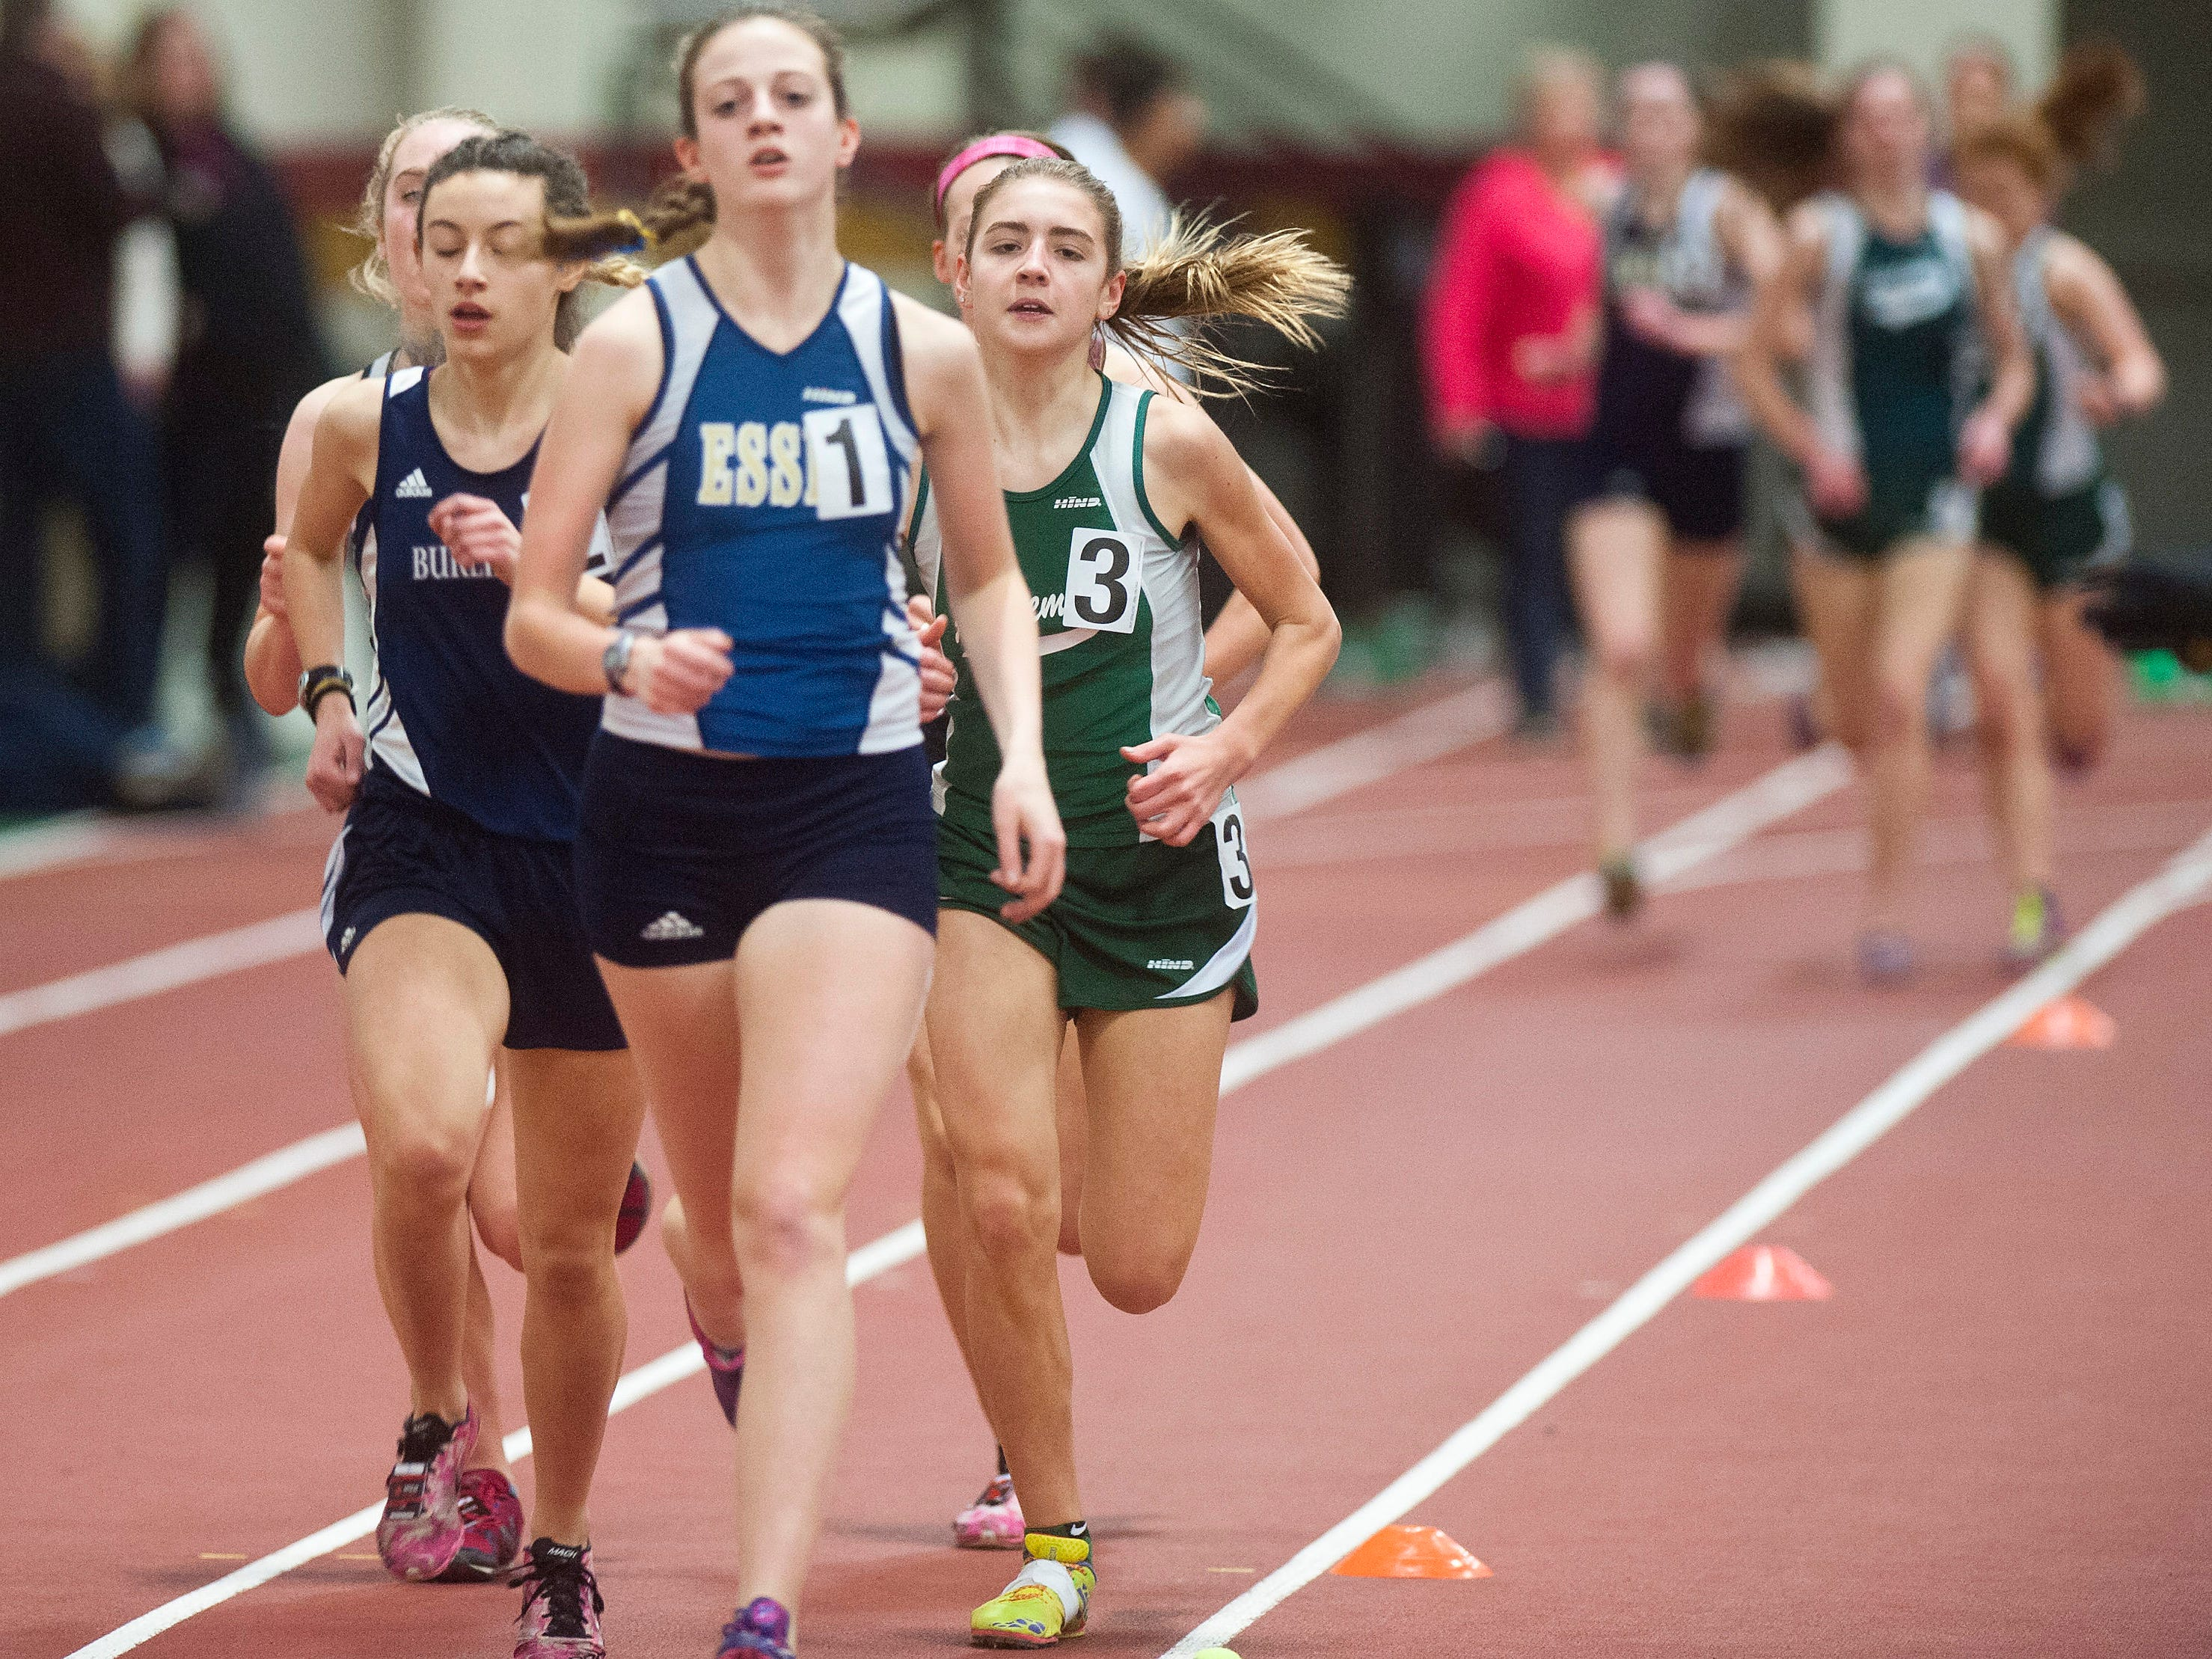 St. Johnsbury's Annie Cunningham (3) looks to overtake Essex's Rose Monahan during the Division I girls 1,600 meter race on Saturday at Norwich University.